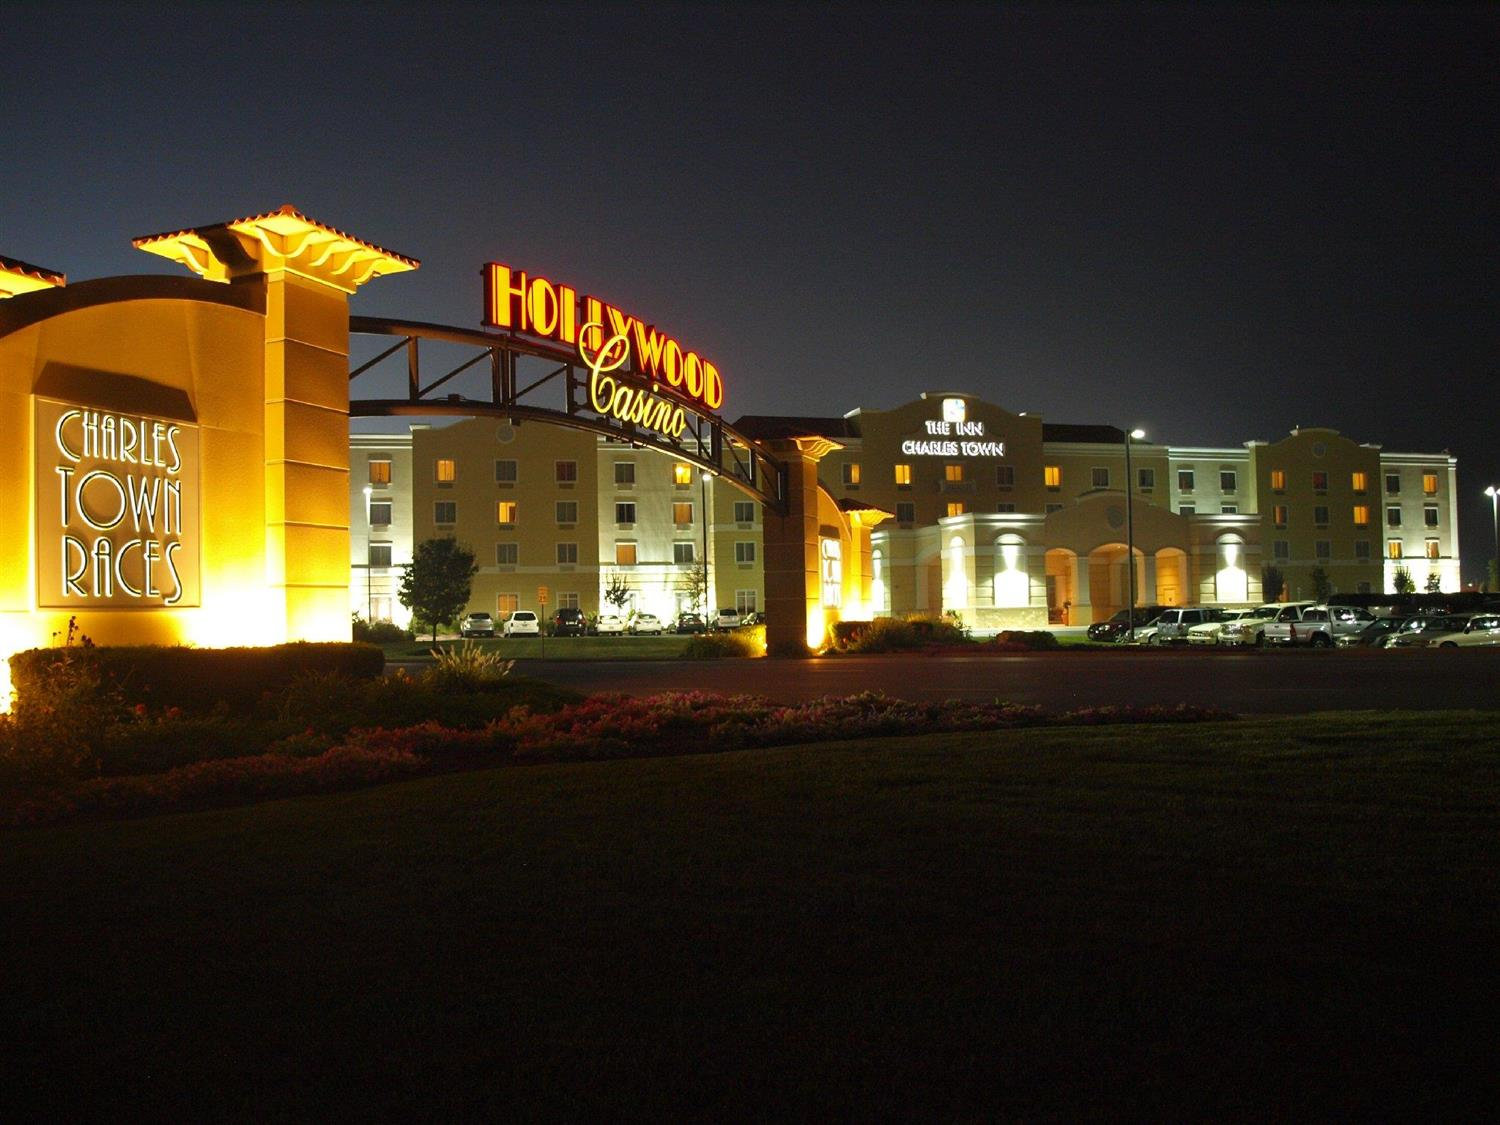 Hollywood casino charlestown wv reviews